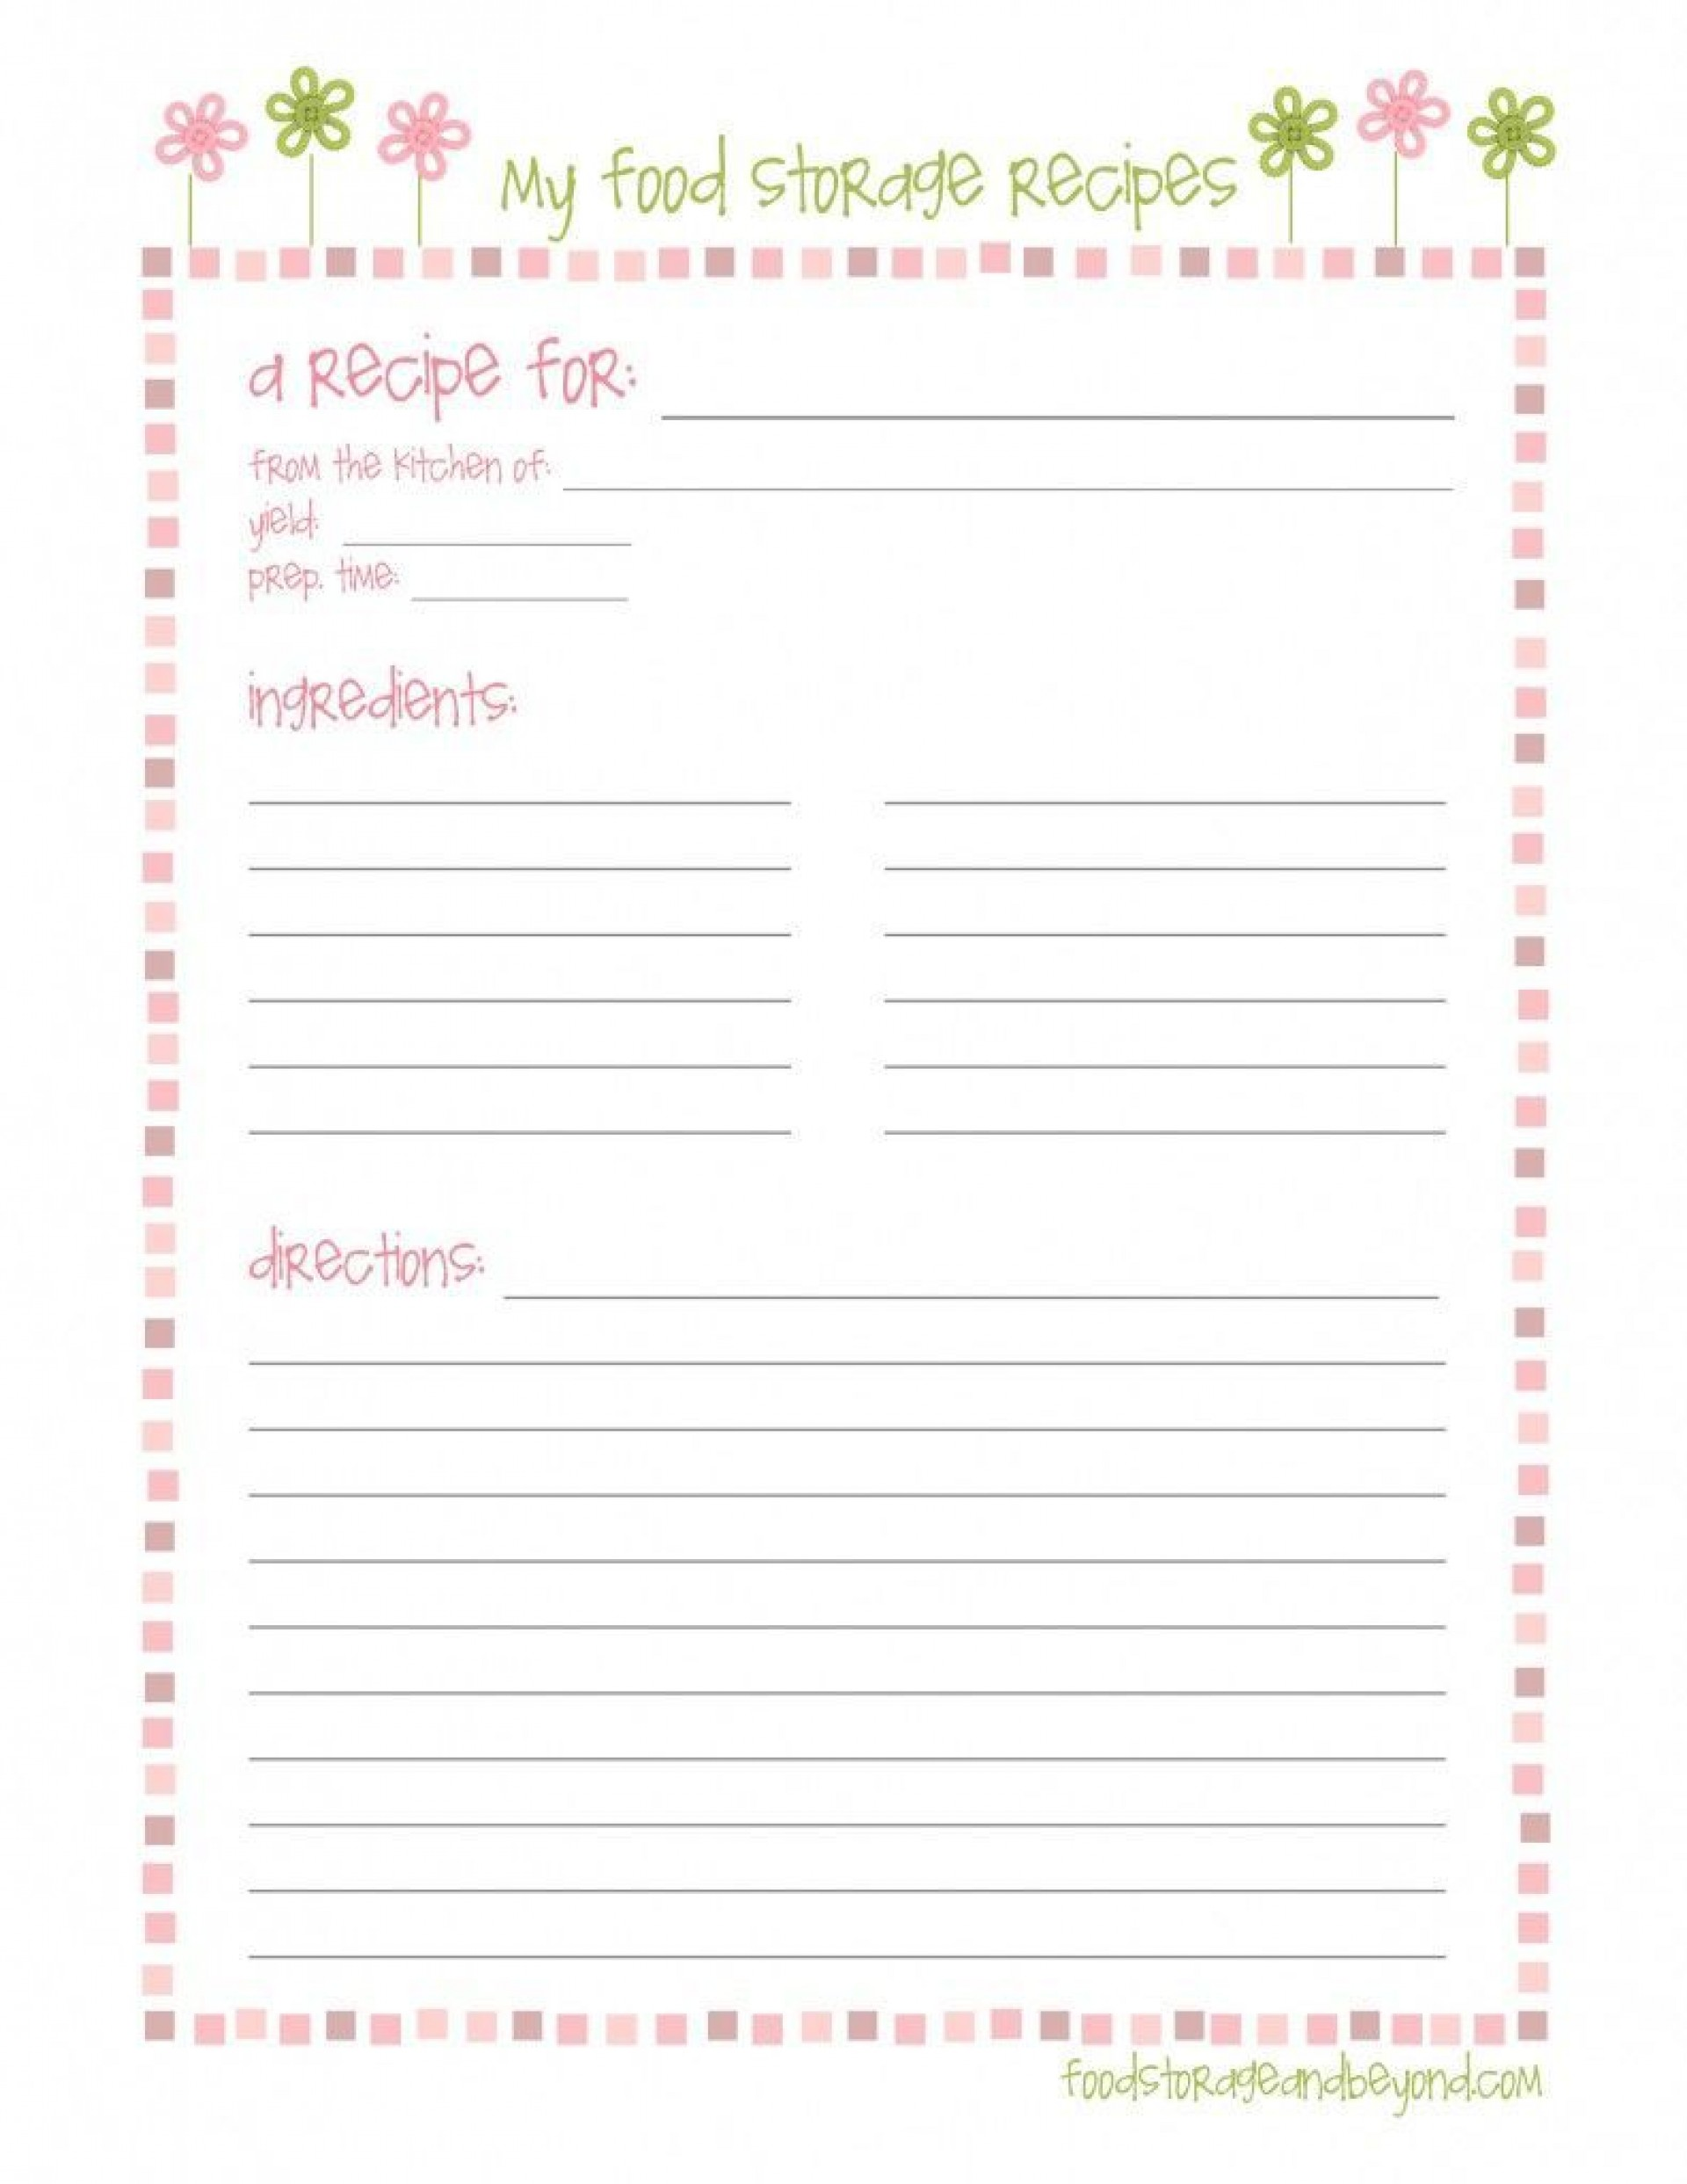 005 Imposing Full Page Recipe Template Inspiration  Card For Word Free Editable1920